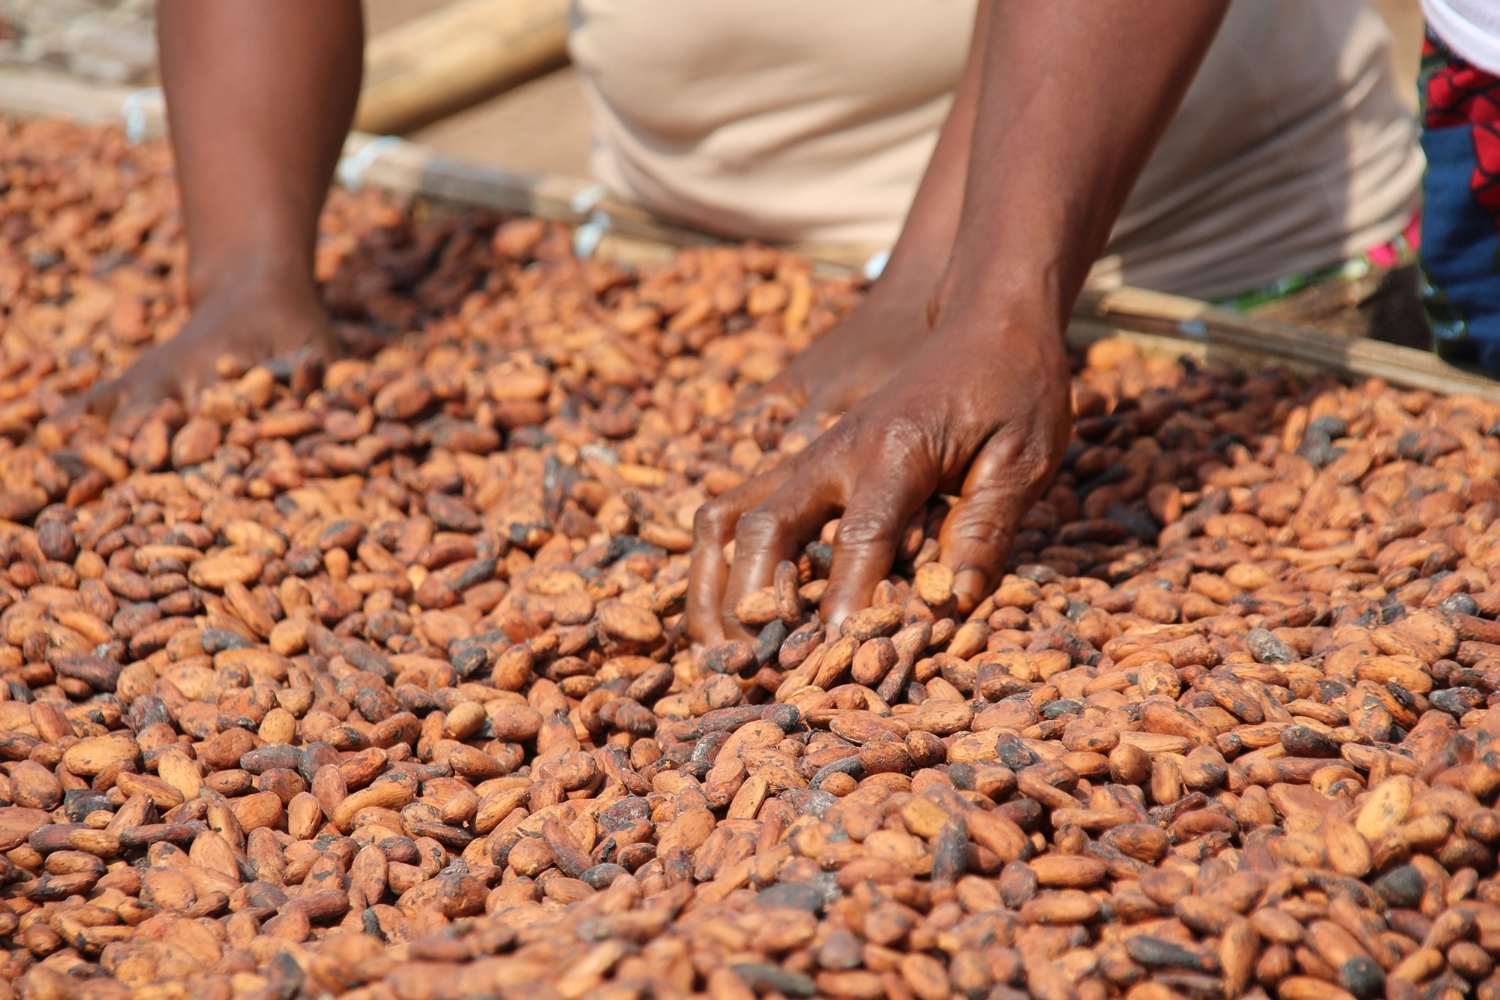 West African cocoa cartel battles with the traders